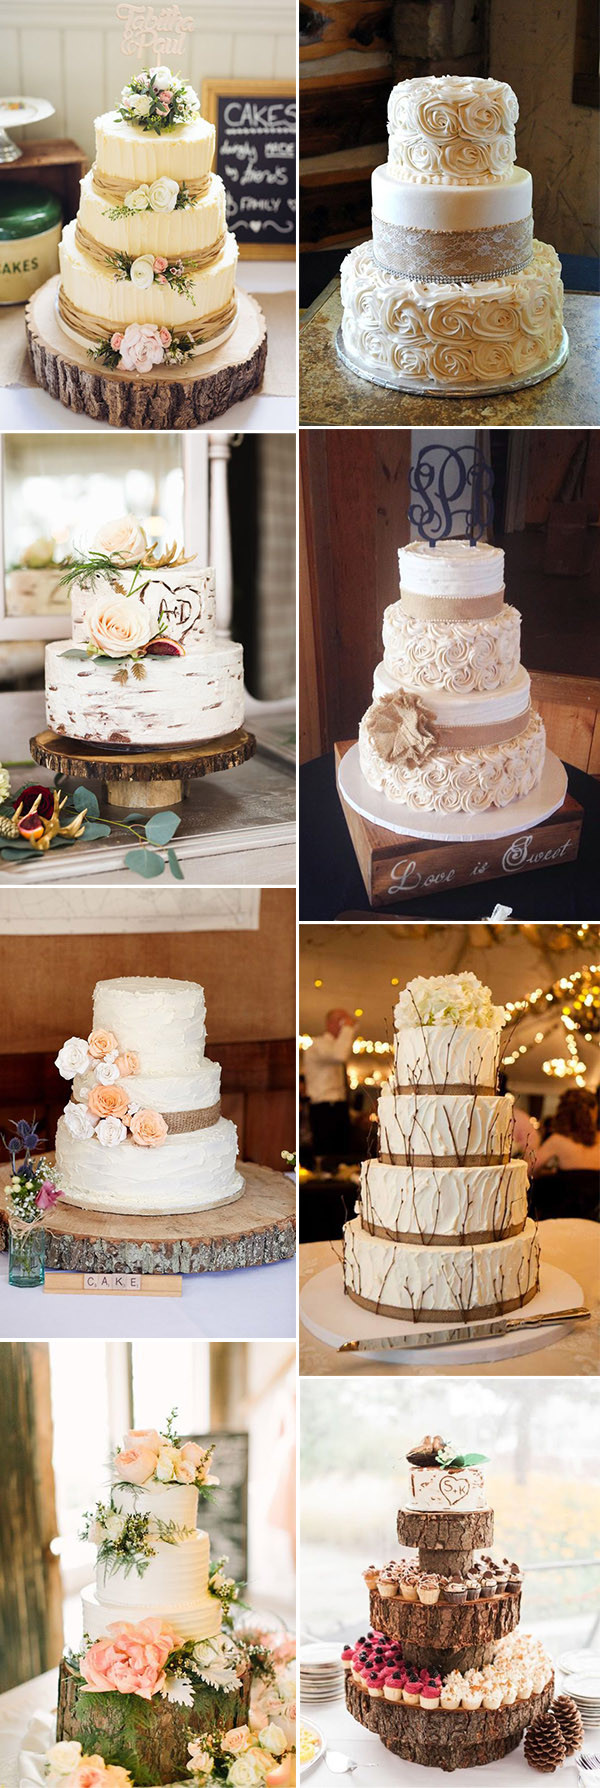 Wedding Cupcake Cakes Designs  50 Steal Worthy Wedding Cake Ideas For Your Special Day